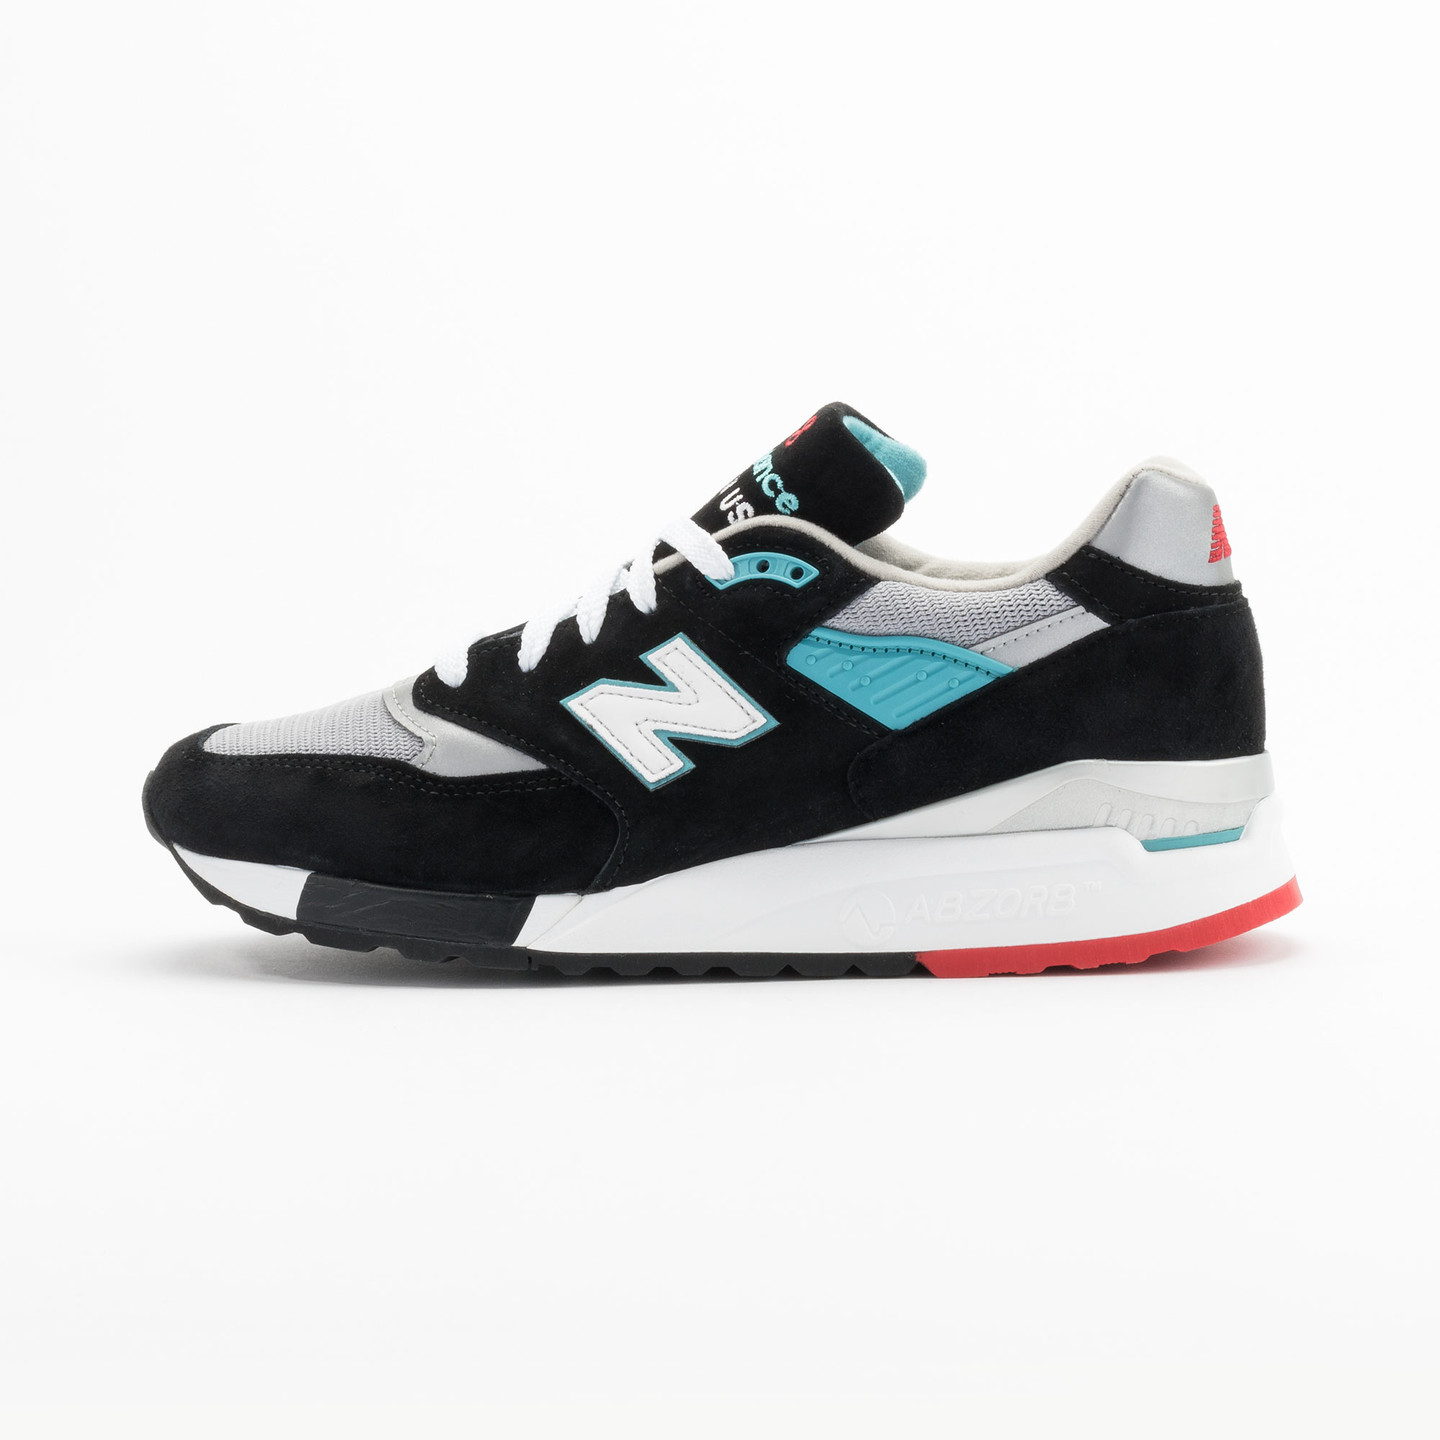 New Balance M998 CBB - Made in USA Black / Grey / Turquoise M998CBB-42